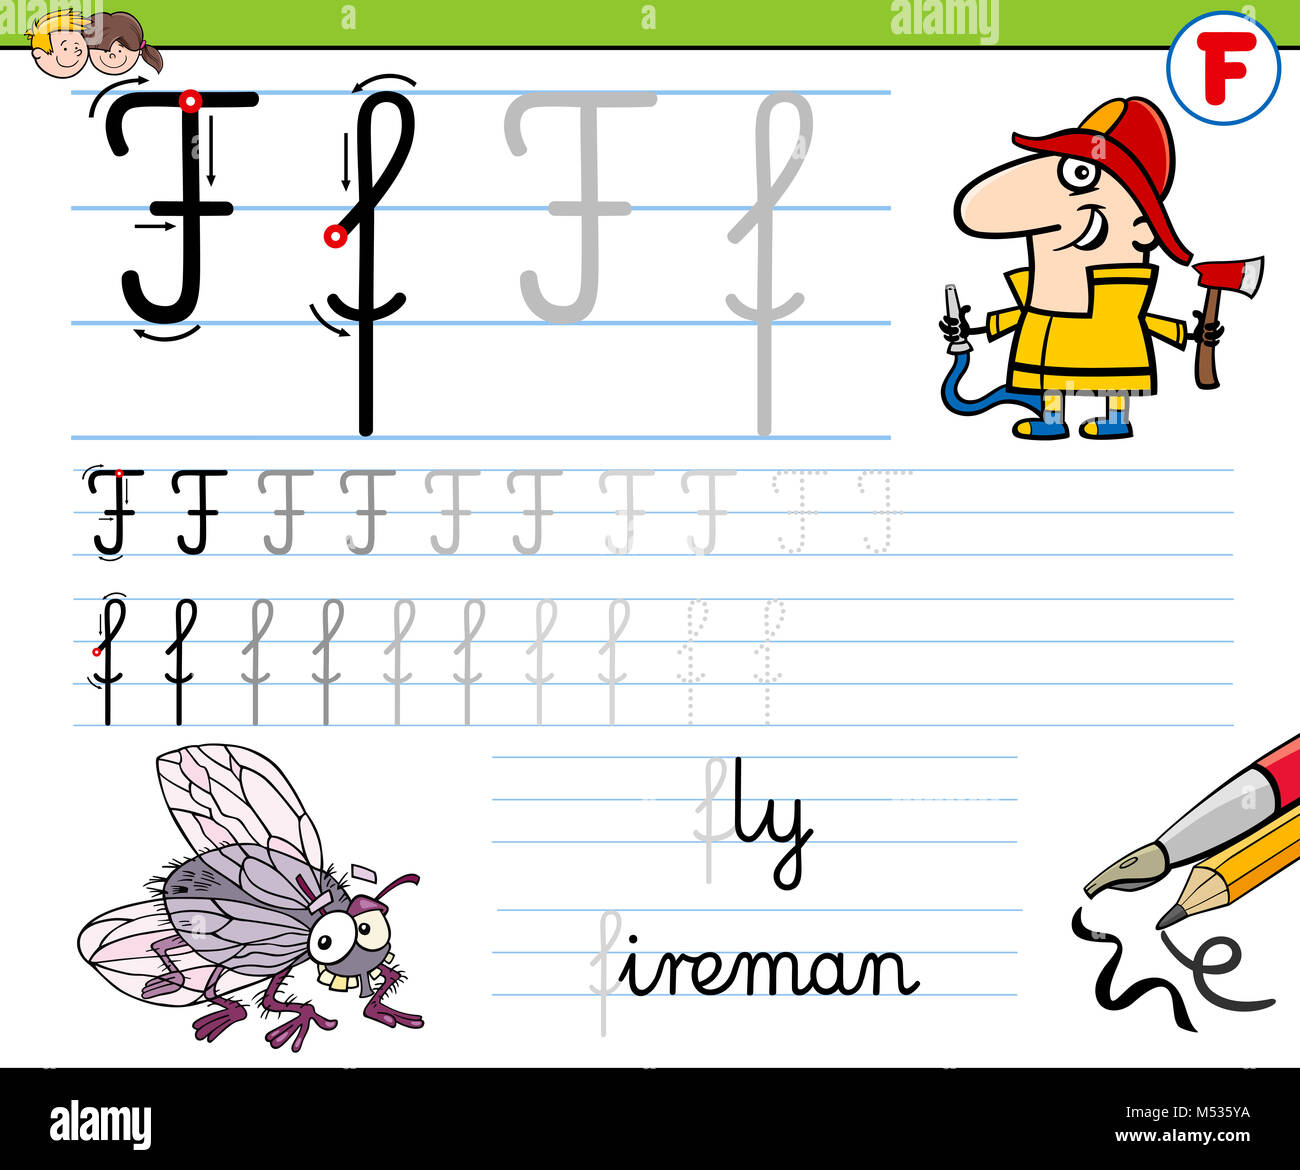 How To Write Letter F Worksheet For Kids Stock Photo